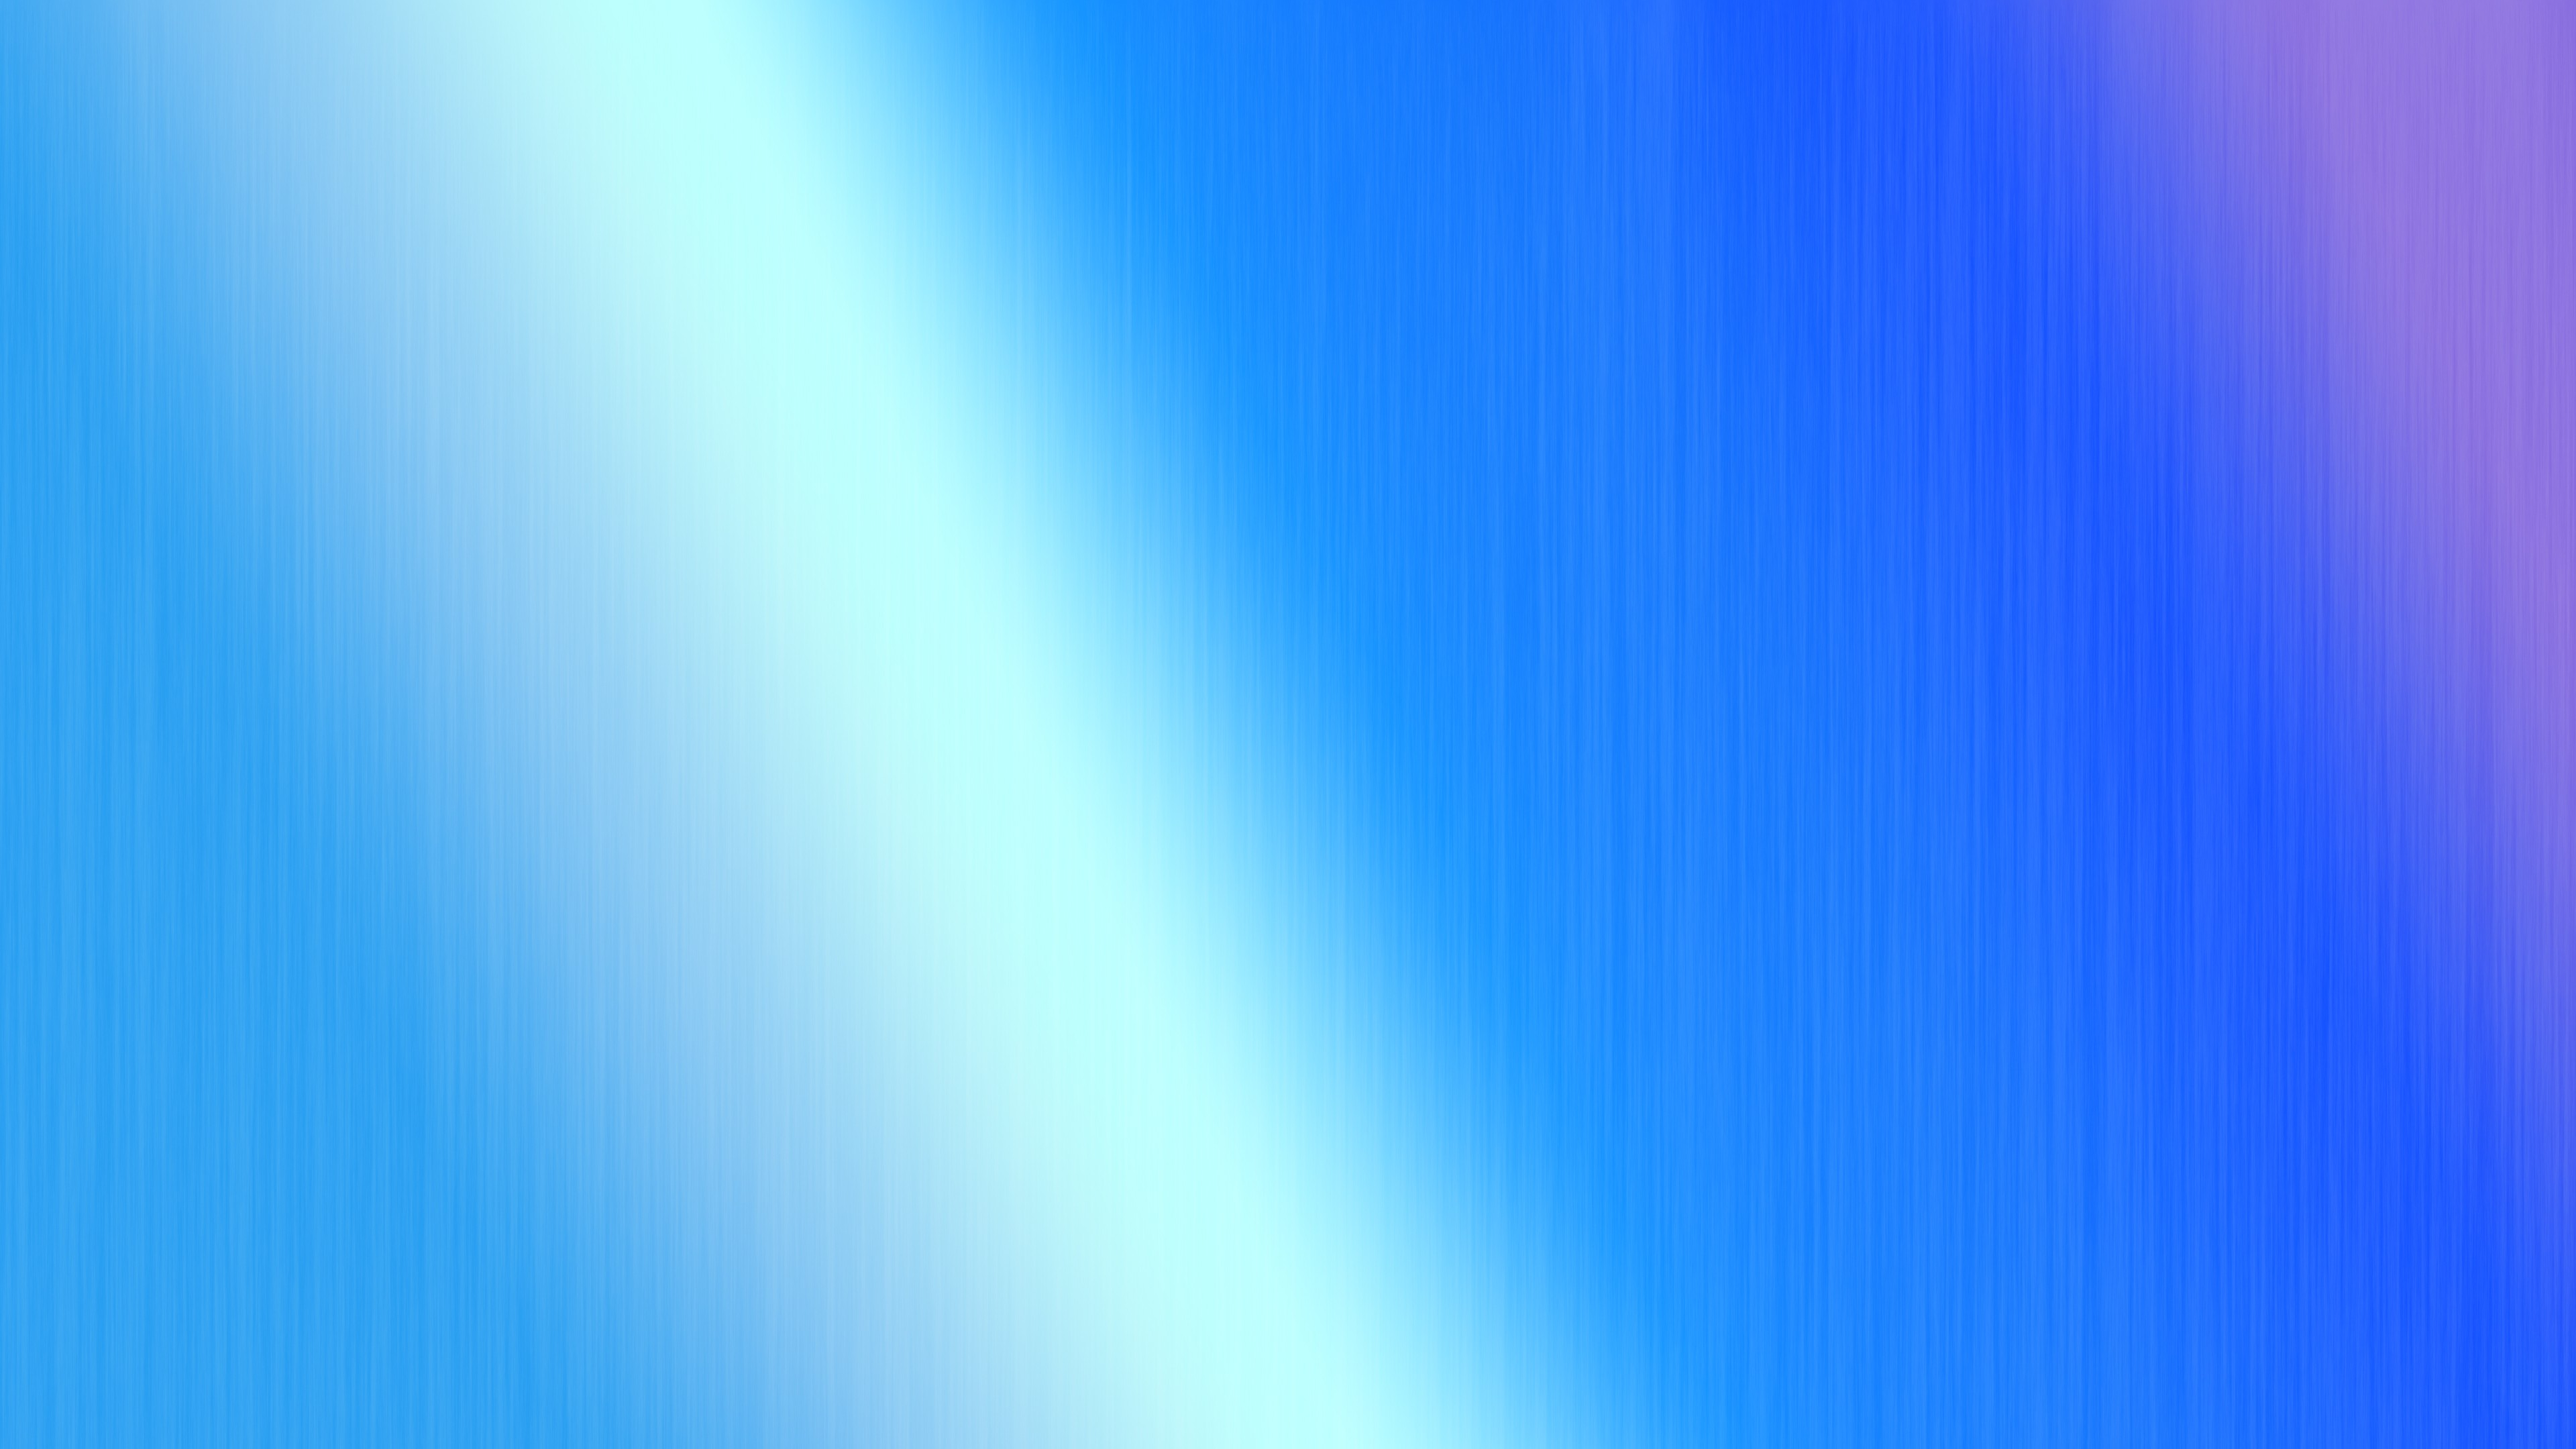 tags abstract blue metallic minimalism license public domain wallpaper 3840x2160